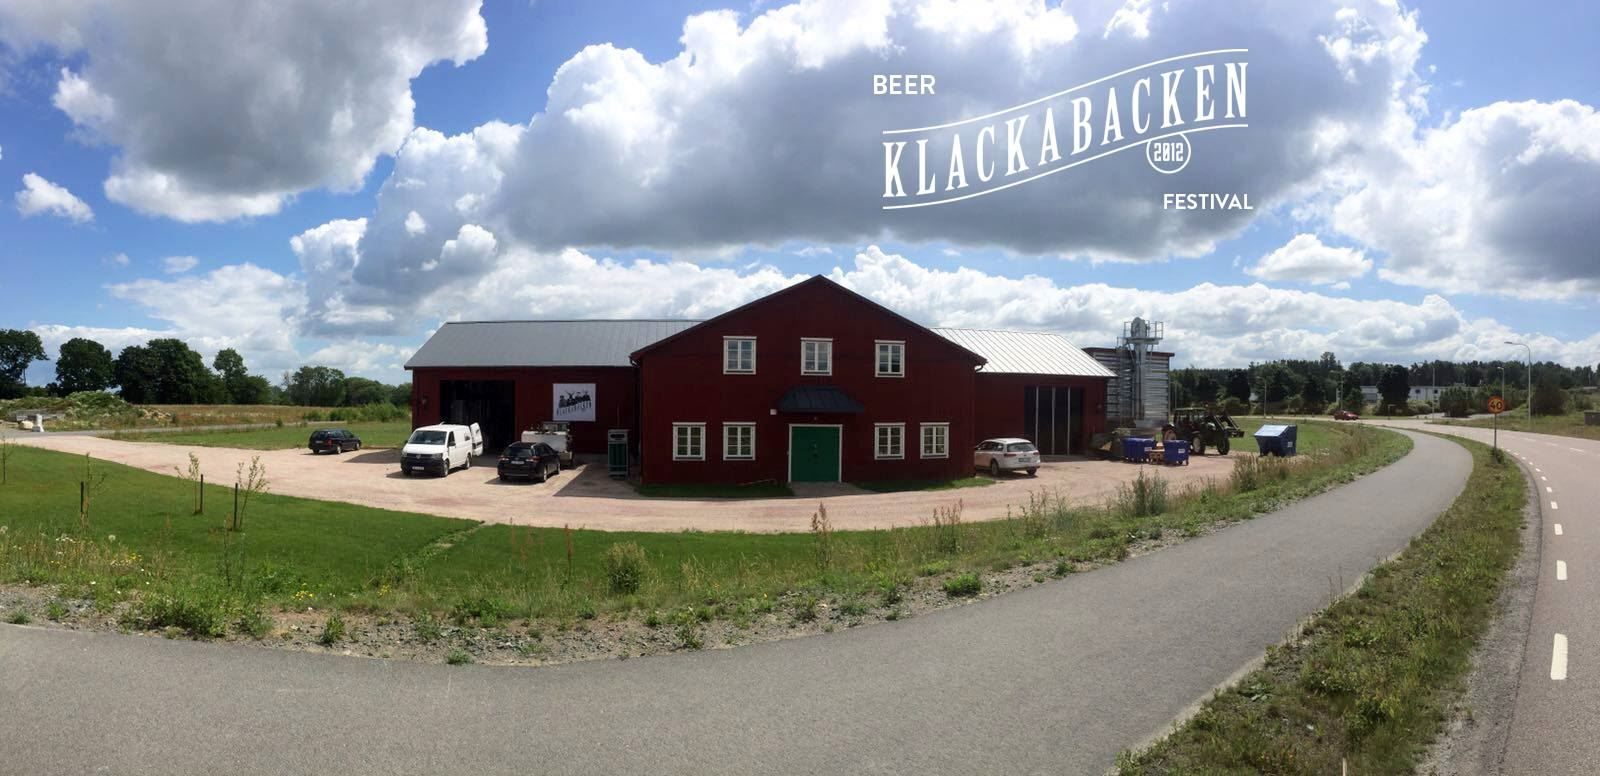 Klackabacken Beer Festival 2017